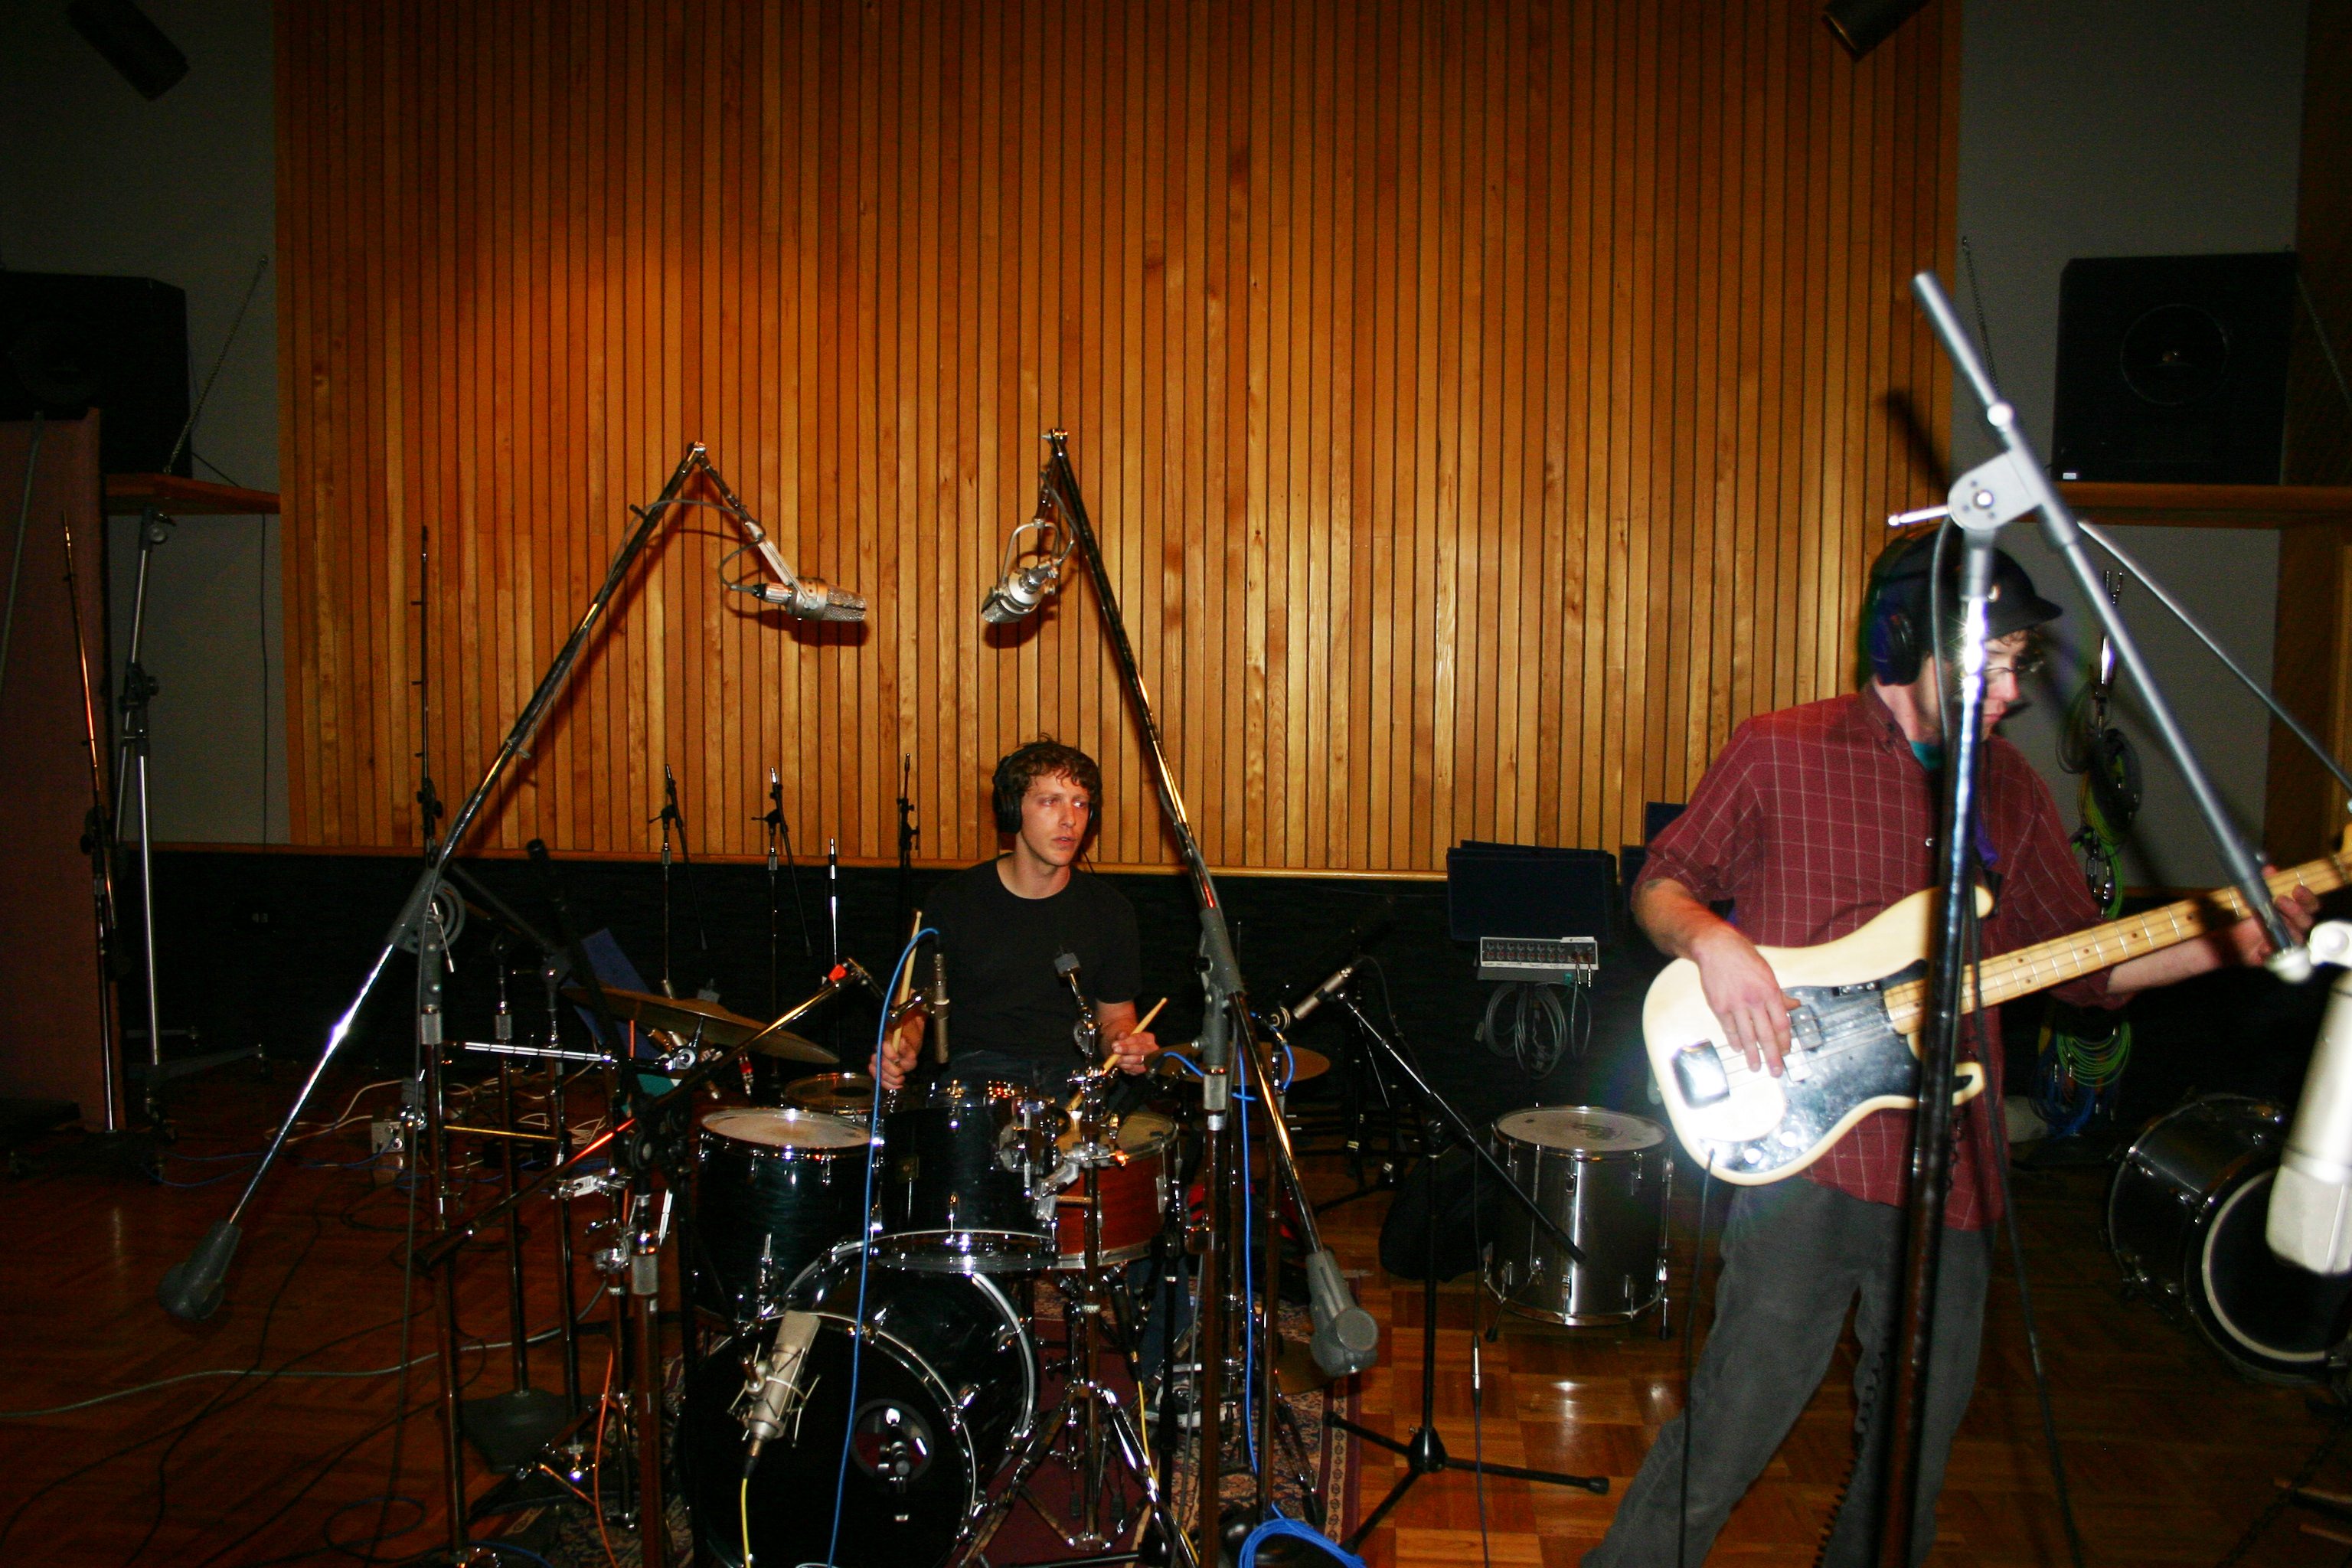 """Mike """"Lumpy"""" Hughes playing drums with bassist Matt Montgomery in the project """"Throttle Elevator Music."""""""